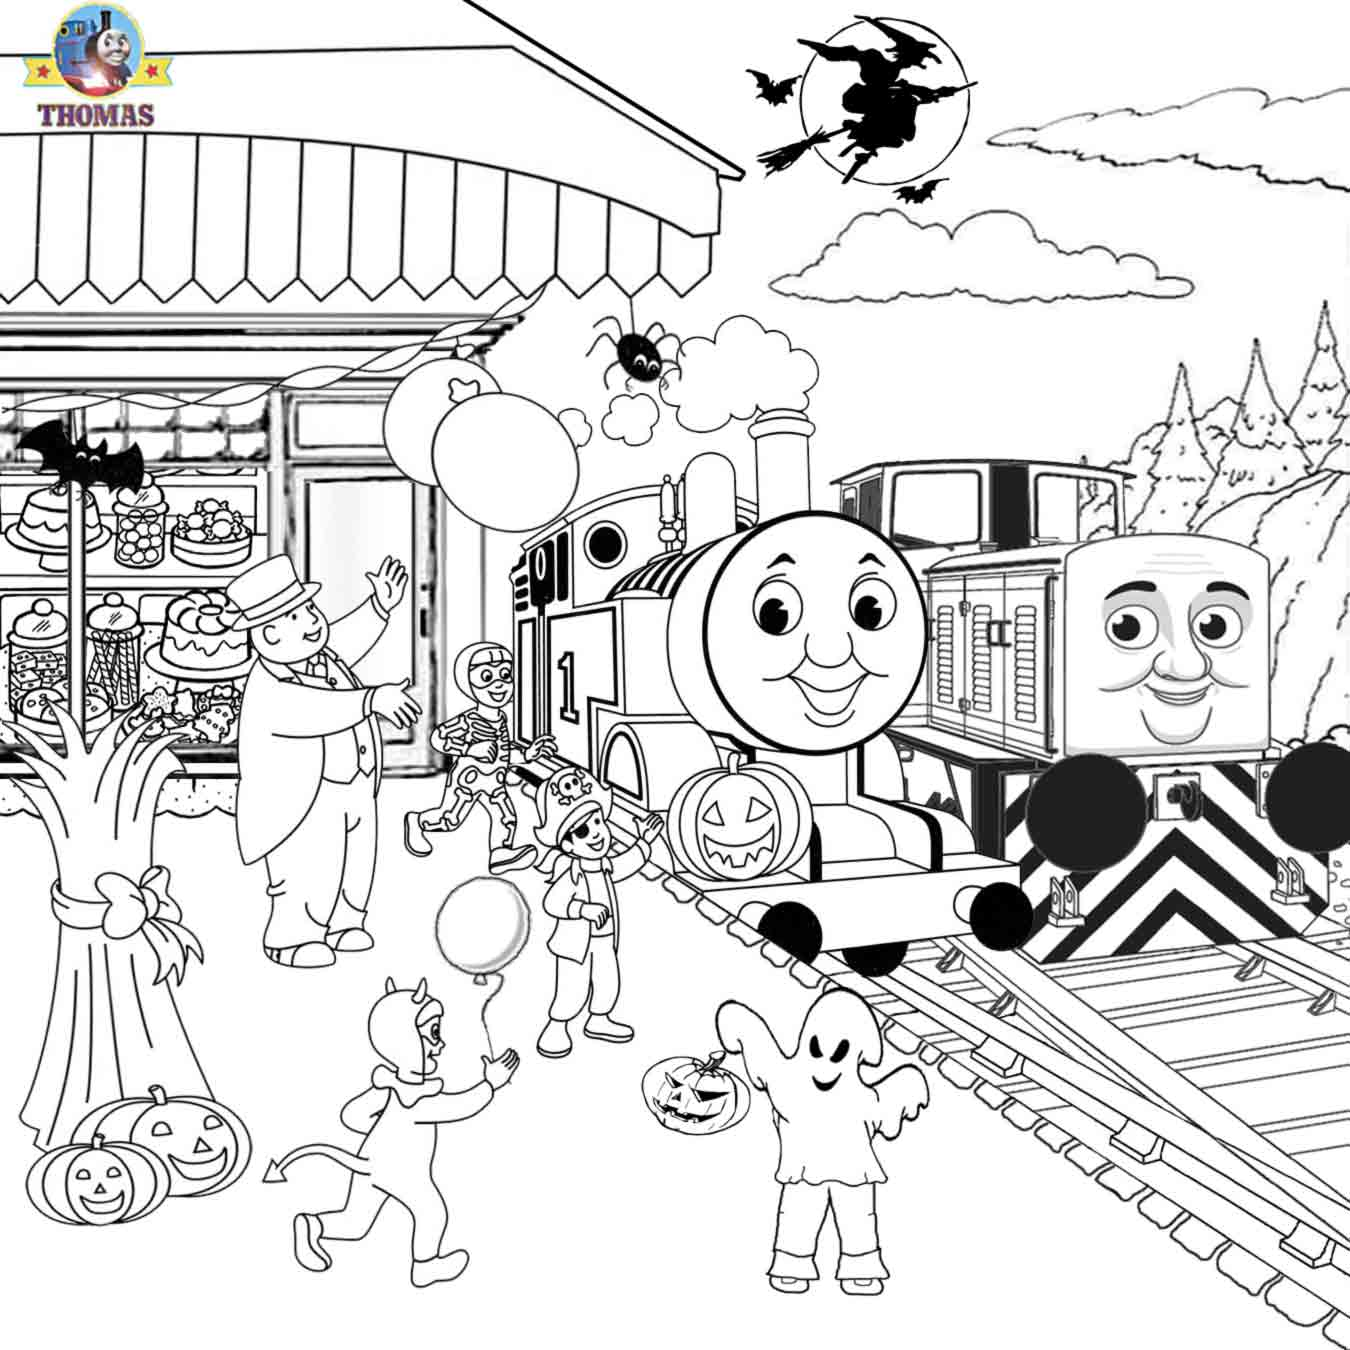 thomas and friends coloring pages edward thomas and friends coloring pages coloring pages pages thomas coloring and friends